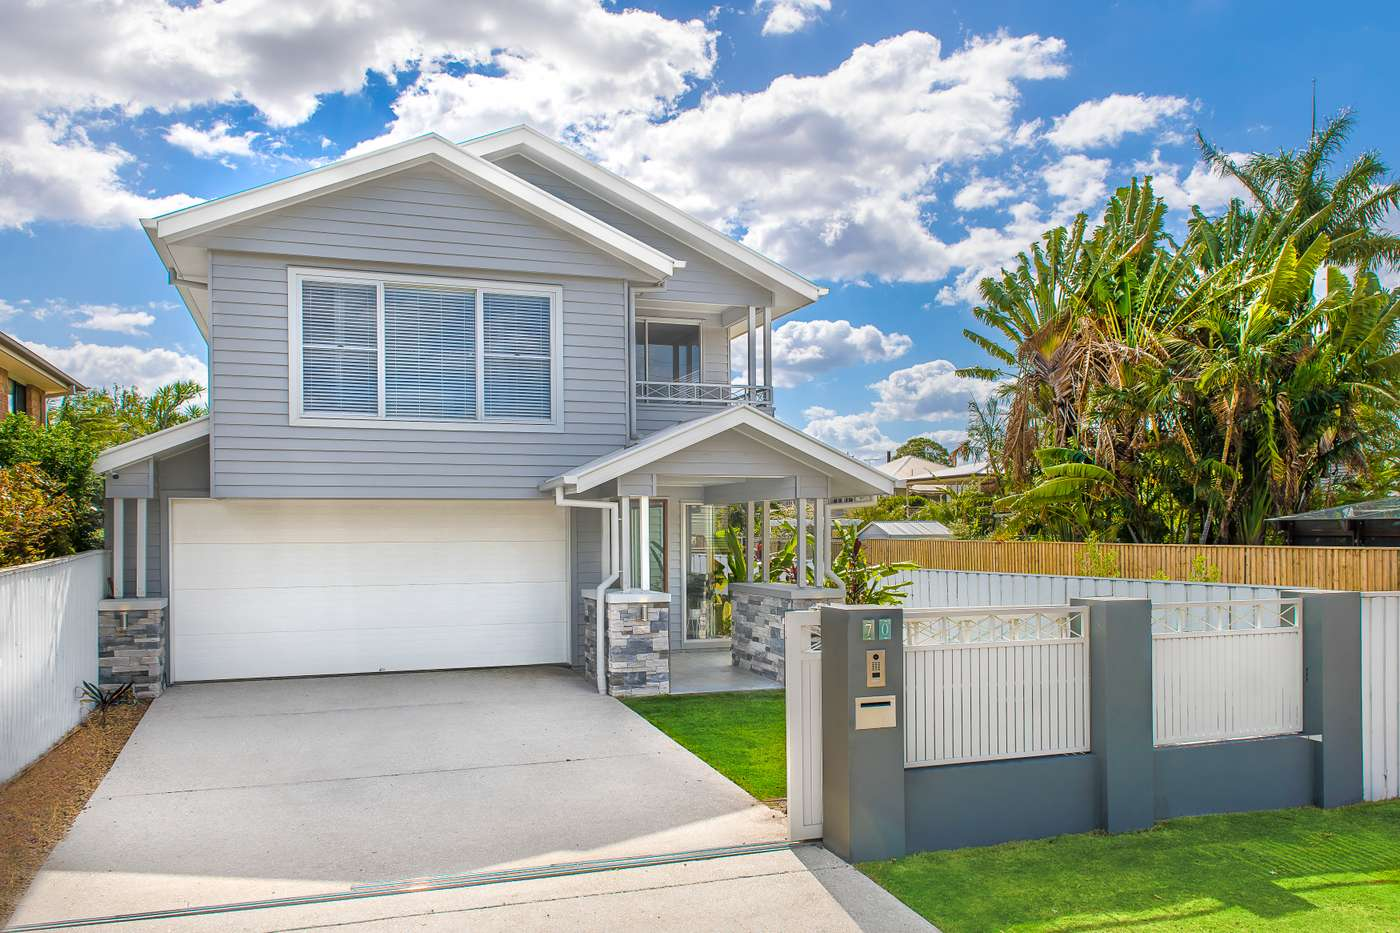 Main view of Homely house listing, 70 Newmarket Street, Hendra, QLD 4011